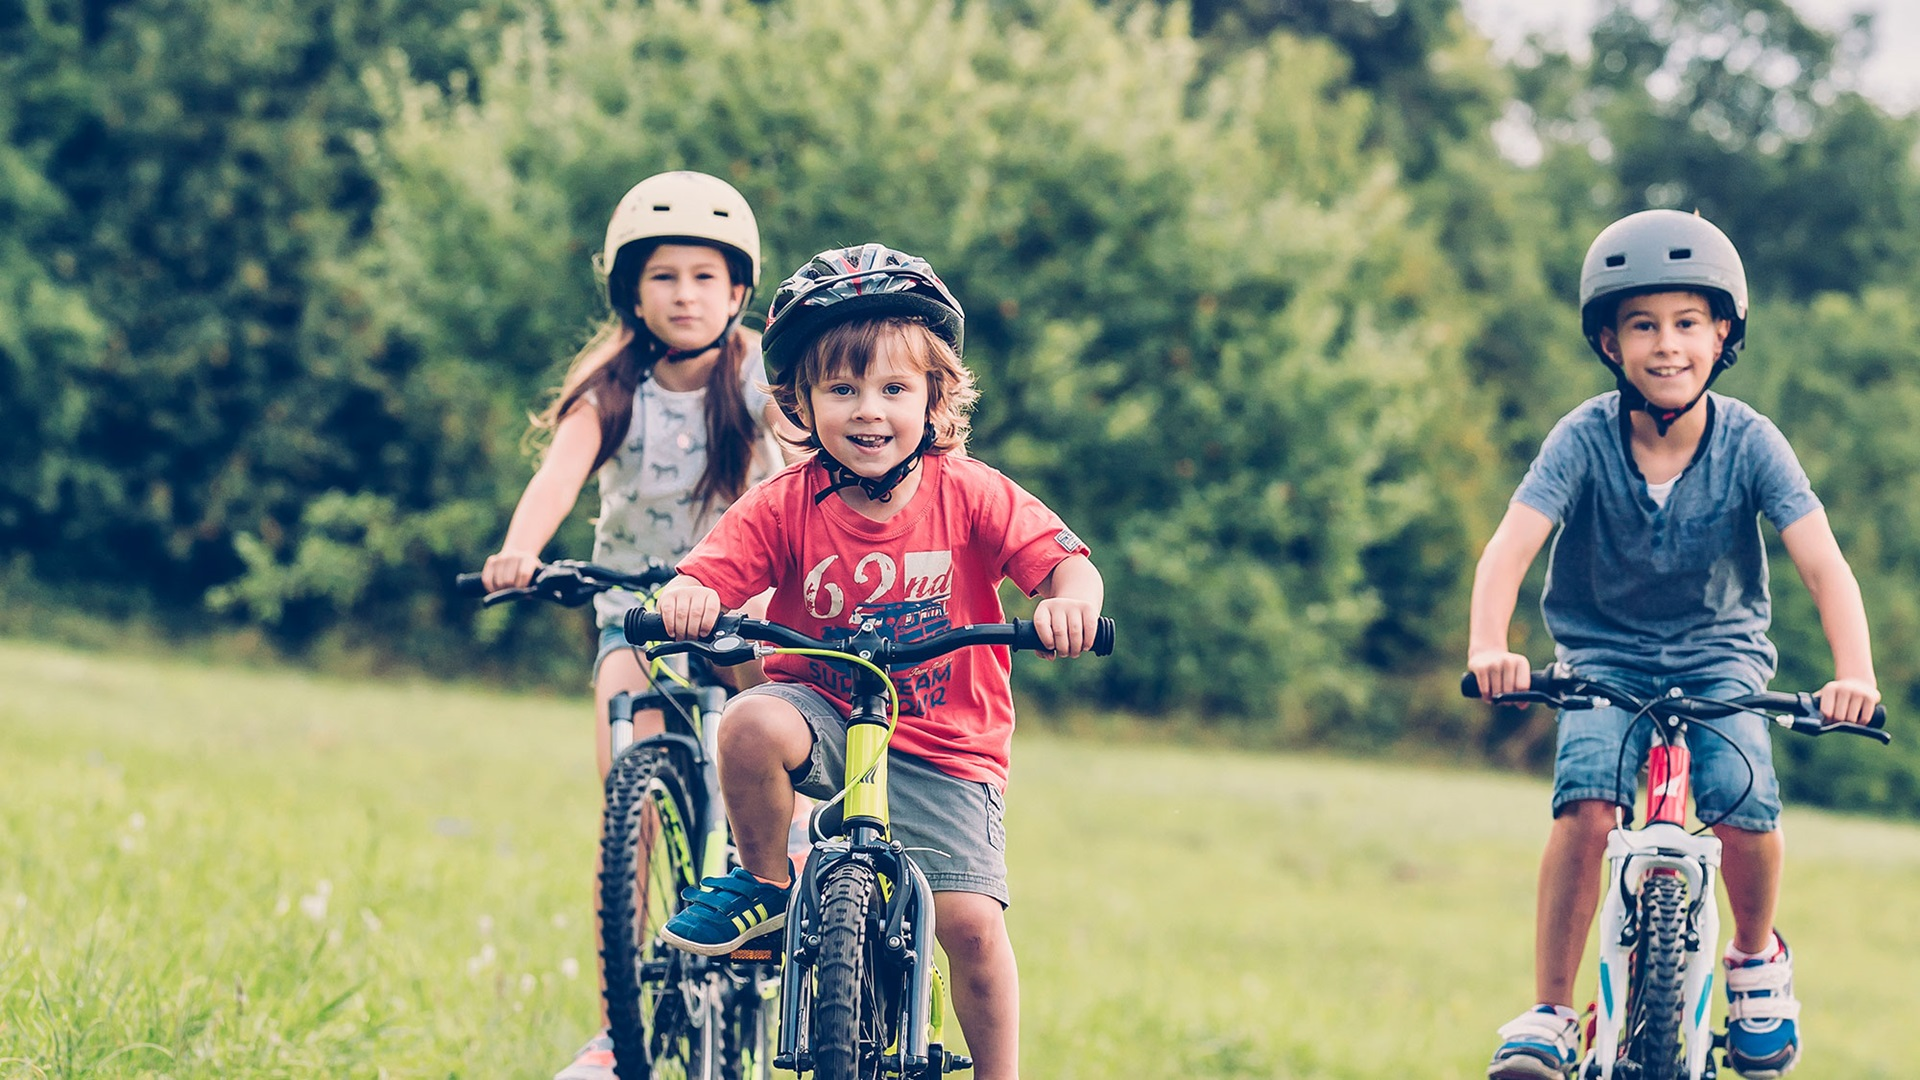 bicycle safety tips and tricks